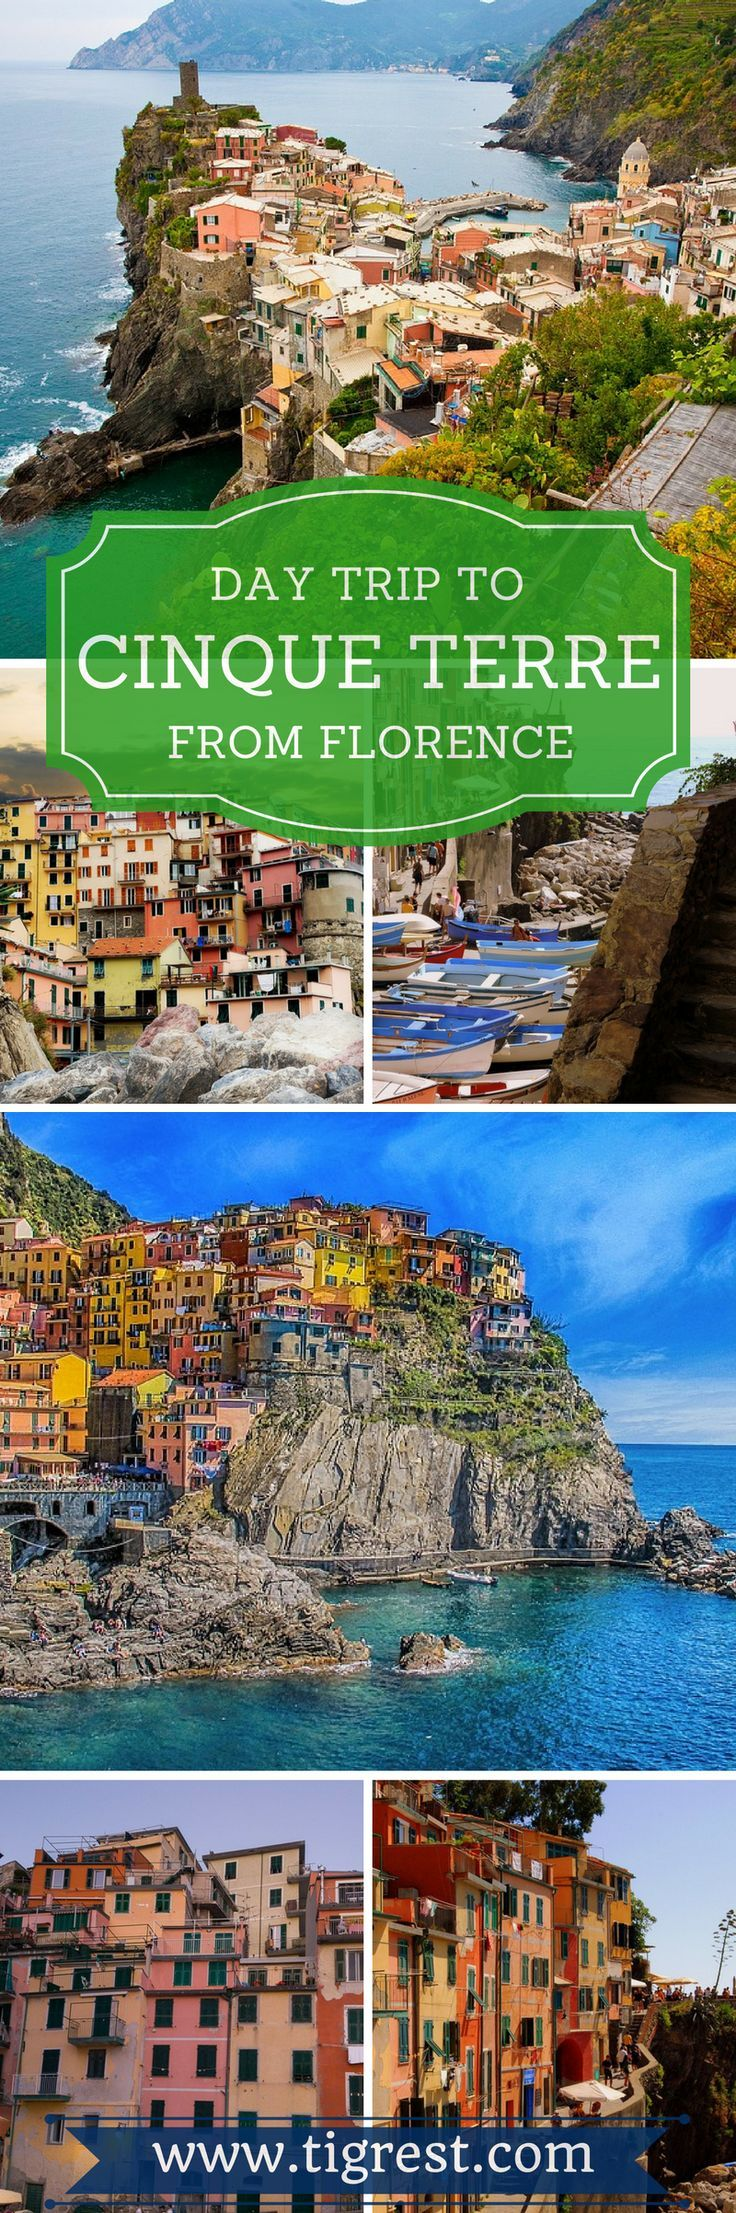 Cinque Terre day trip from Florence with hike from Monterosso to Vernazza - helpful tips how to make the most out of the trip